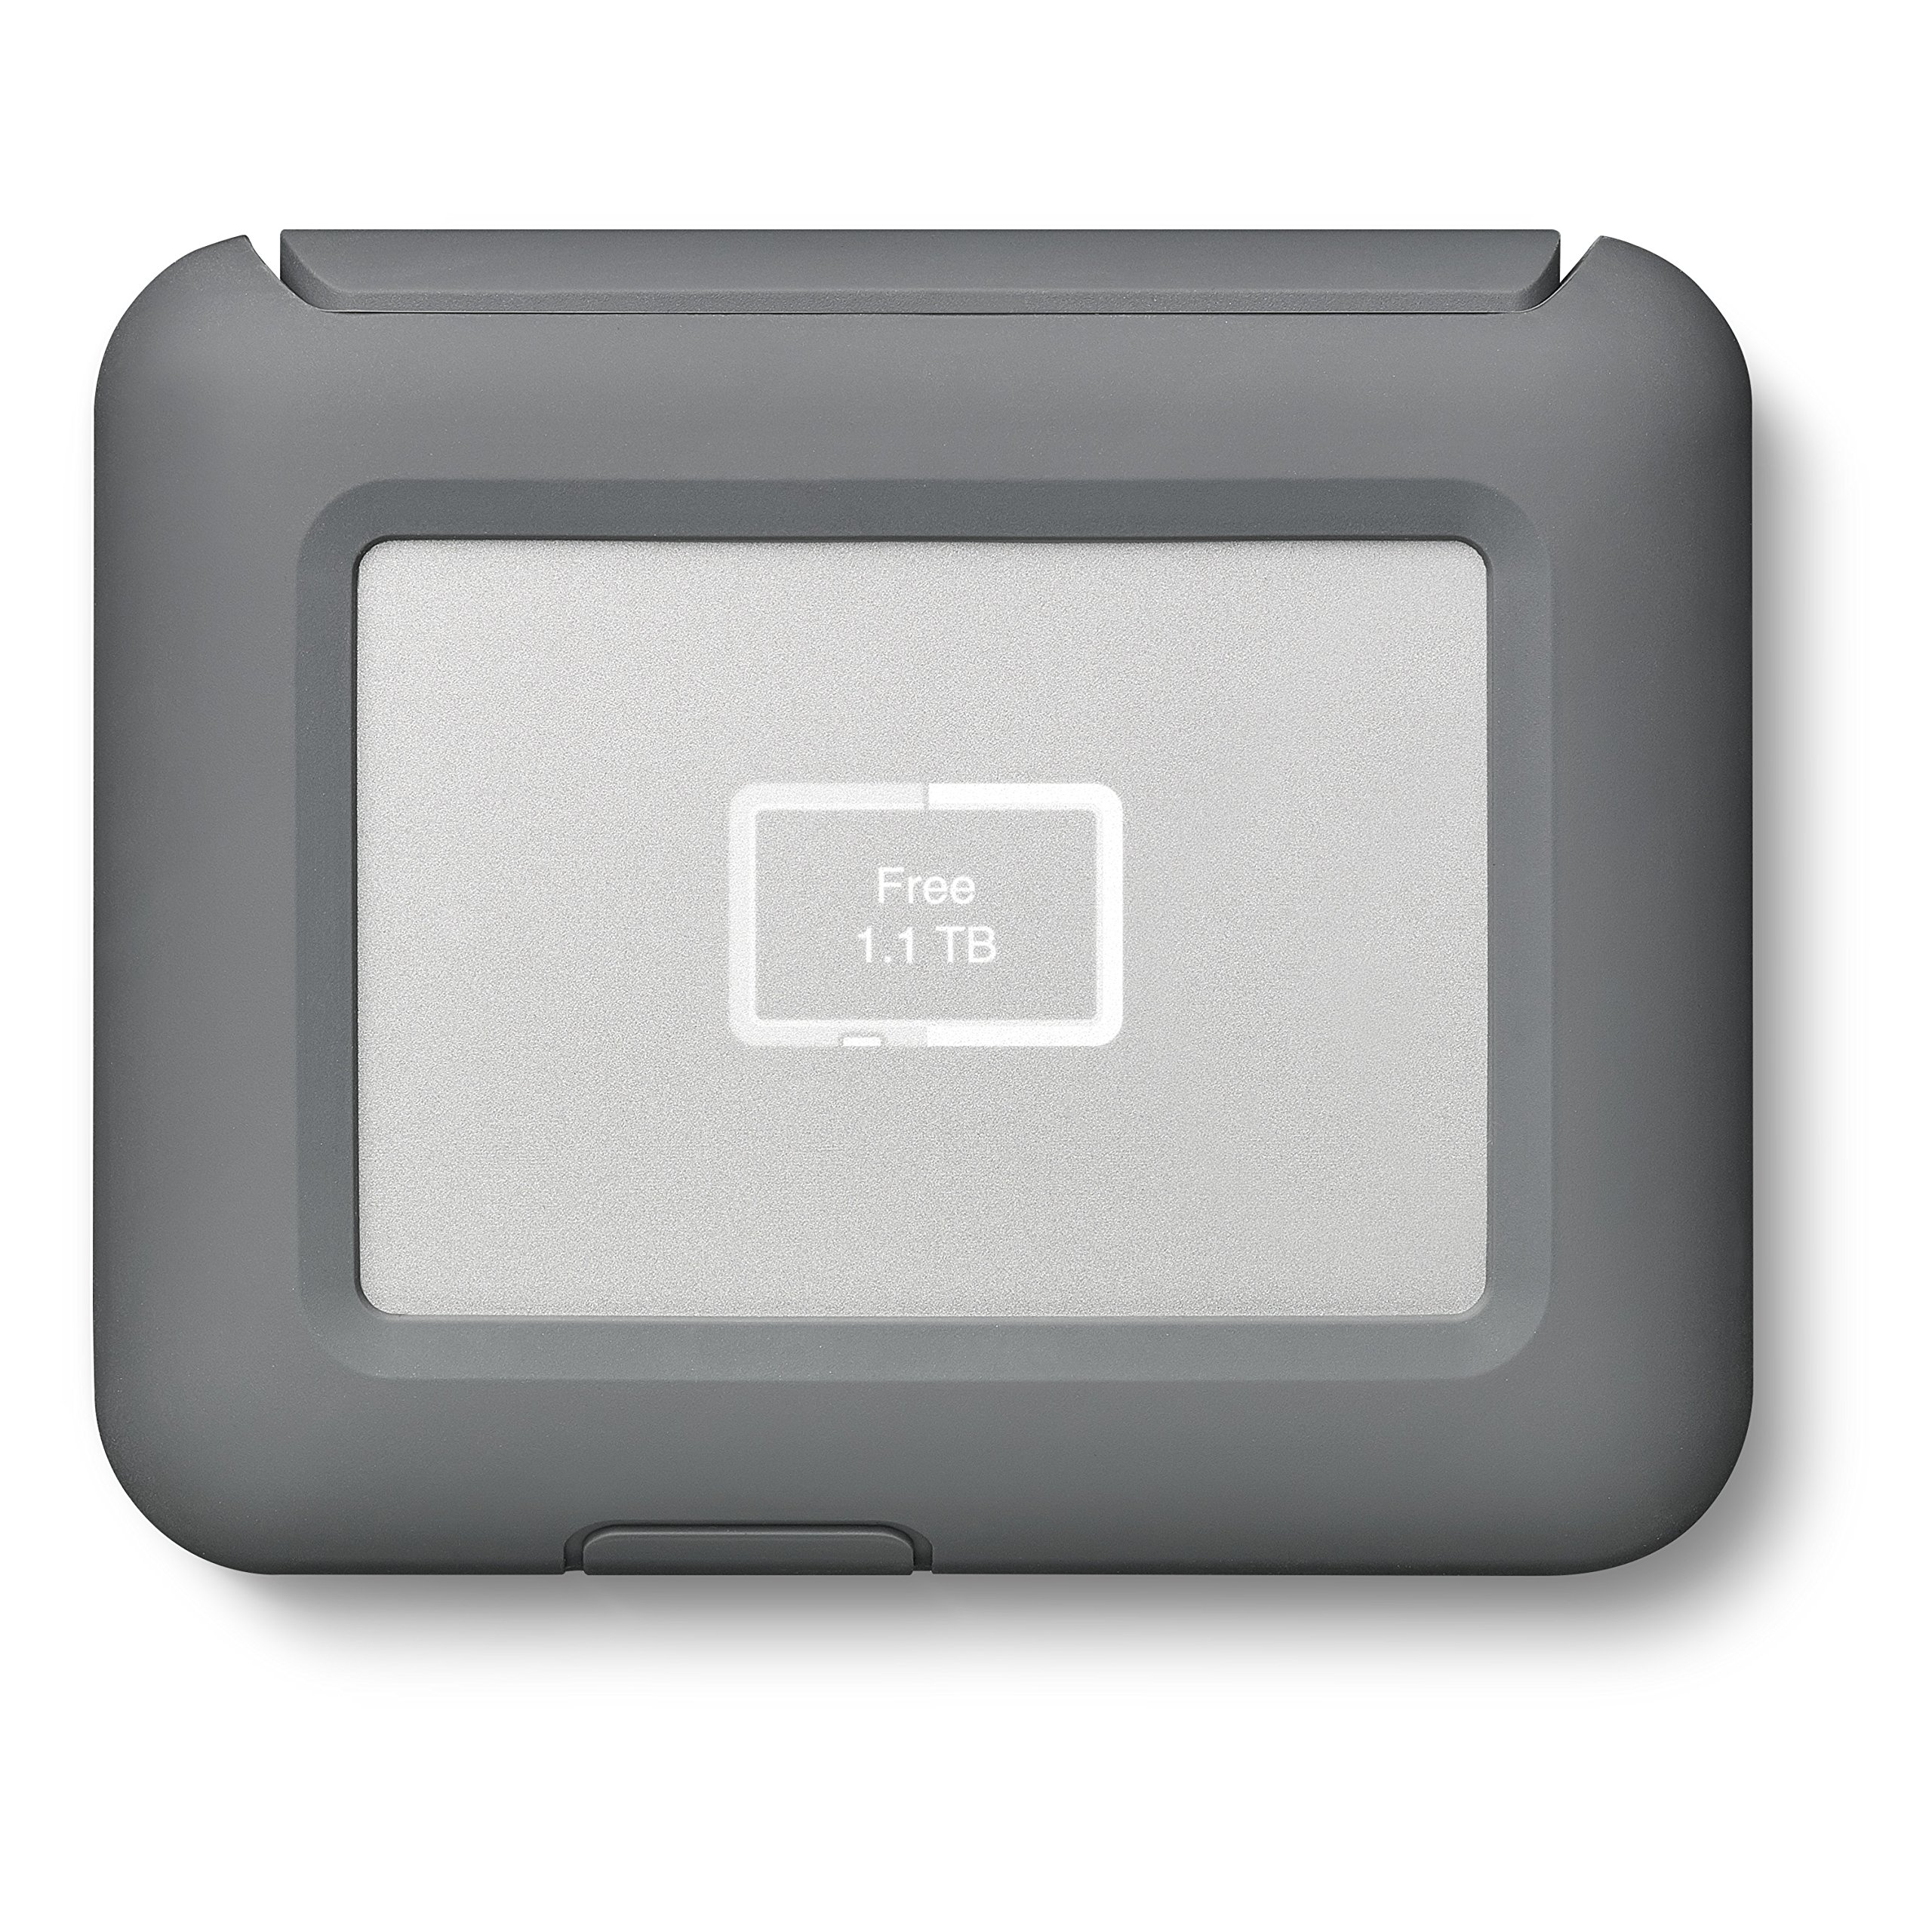 LaCie DJI CoPilot Drive 2TB Portable Drive for Drone Footage -with Integrated Status Screen and SD Card Slot (STGU2000400)